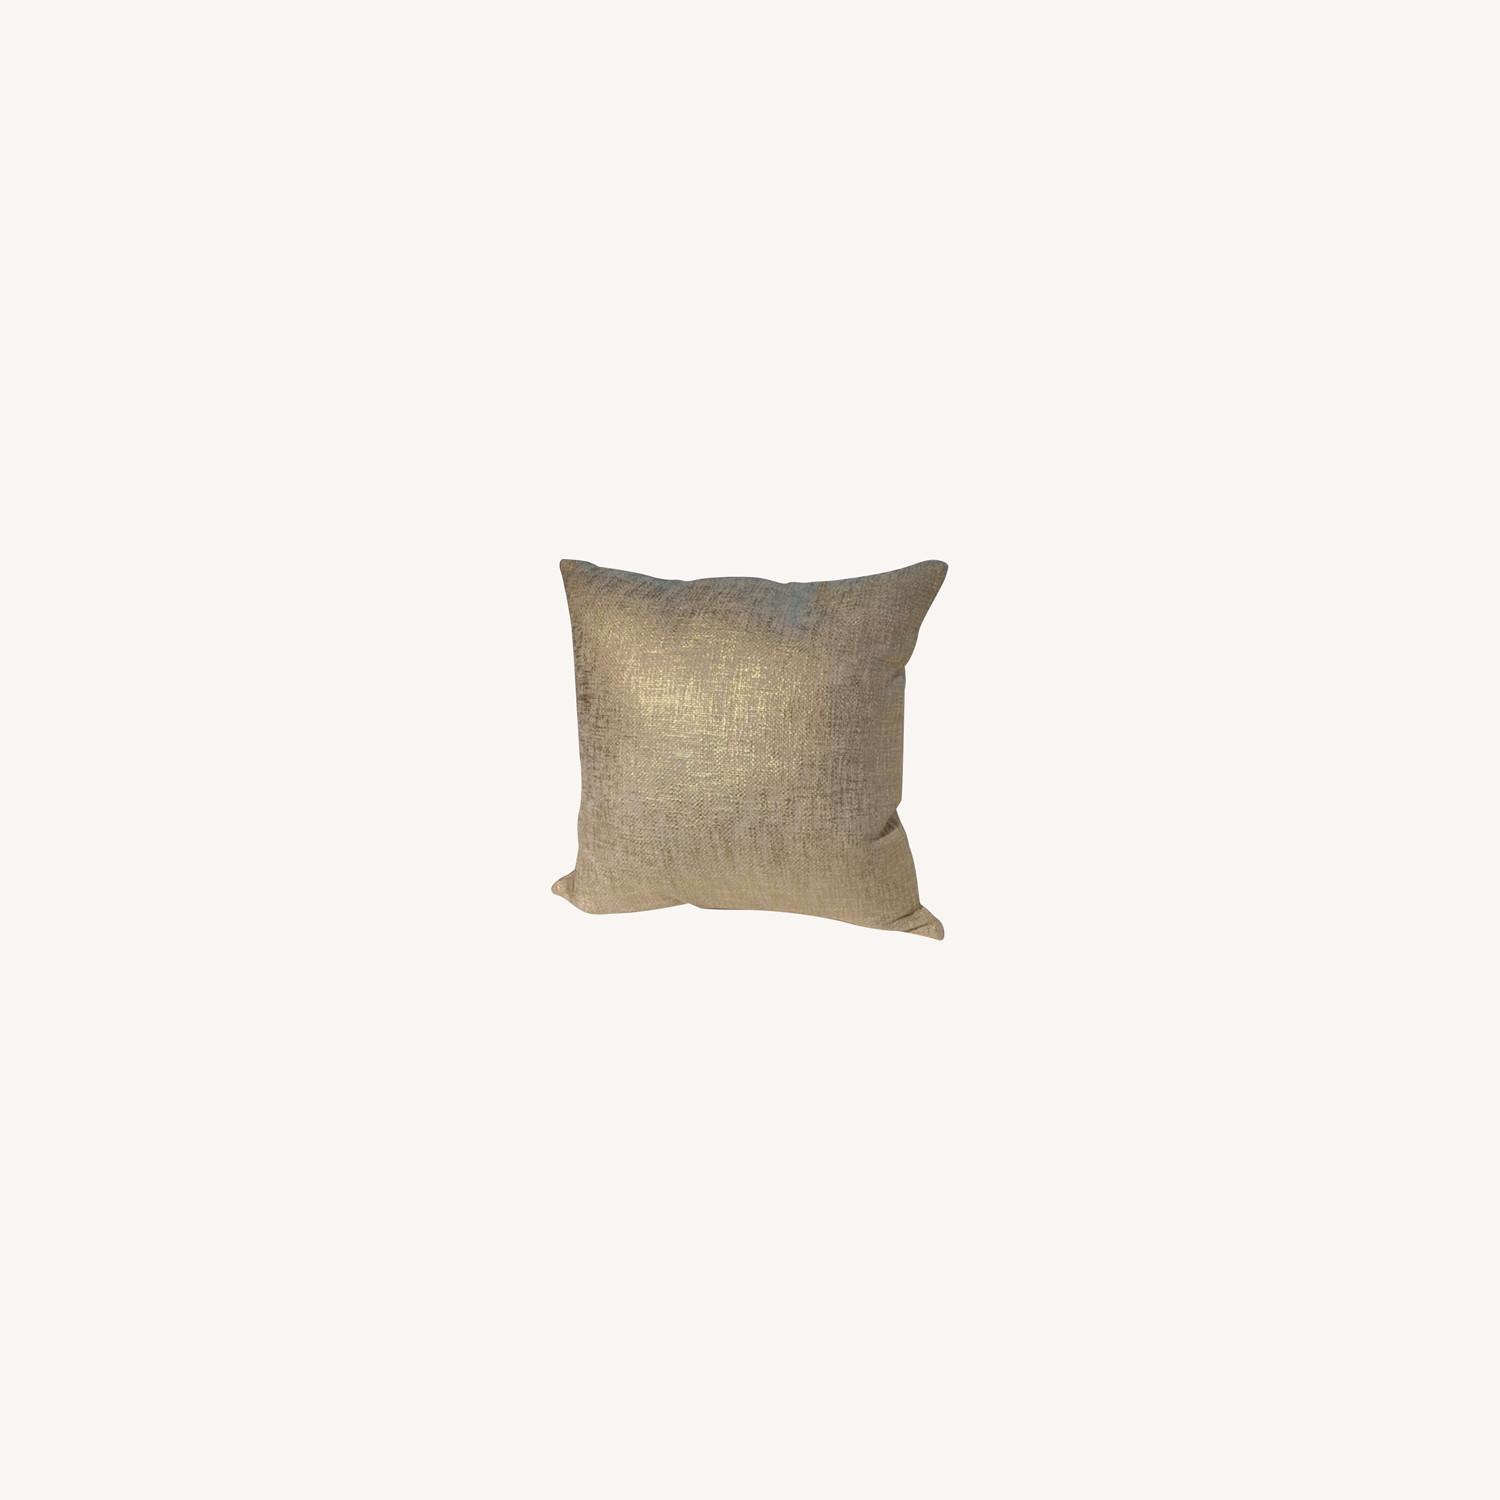 CB2 Glitterati Accent Pillows - Gold - image-0